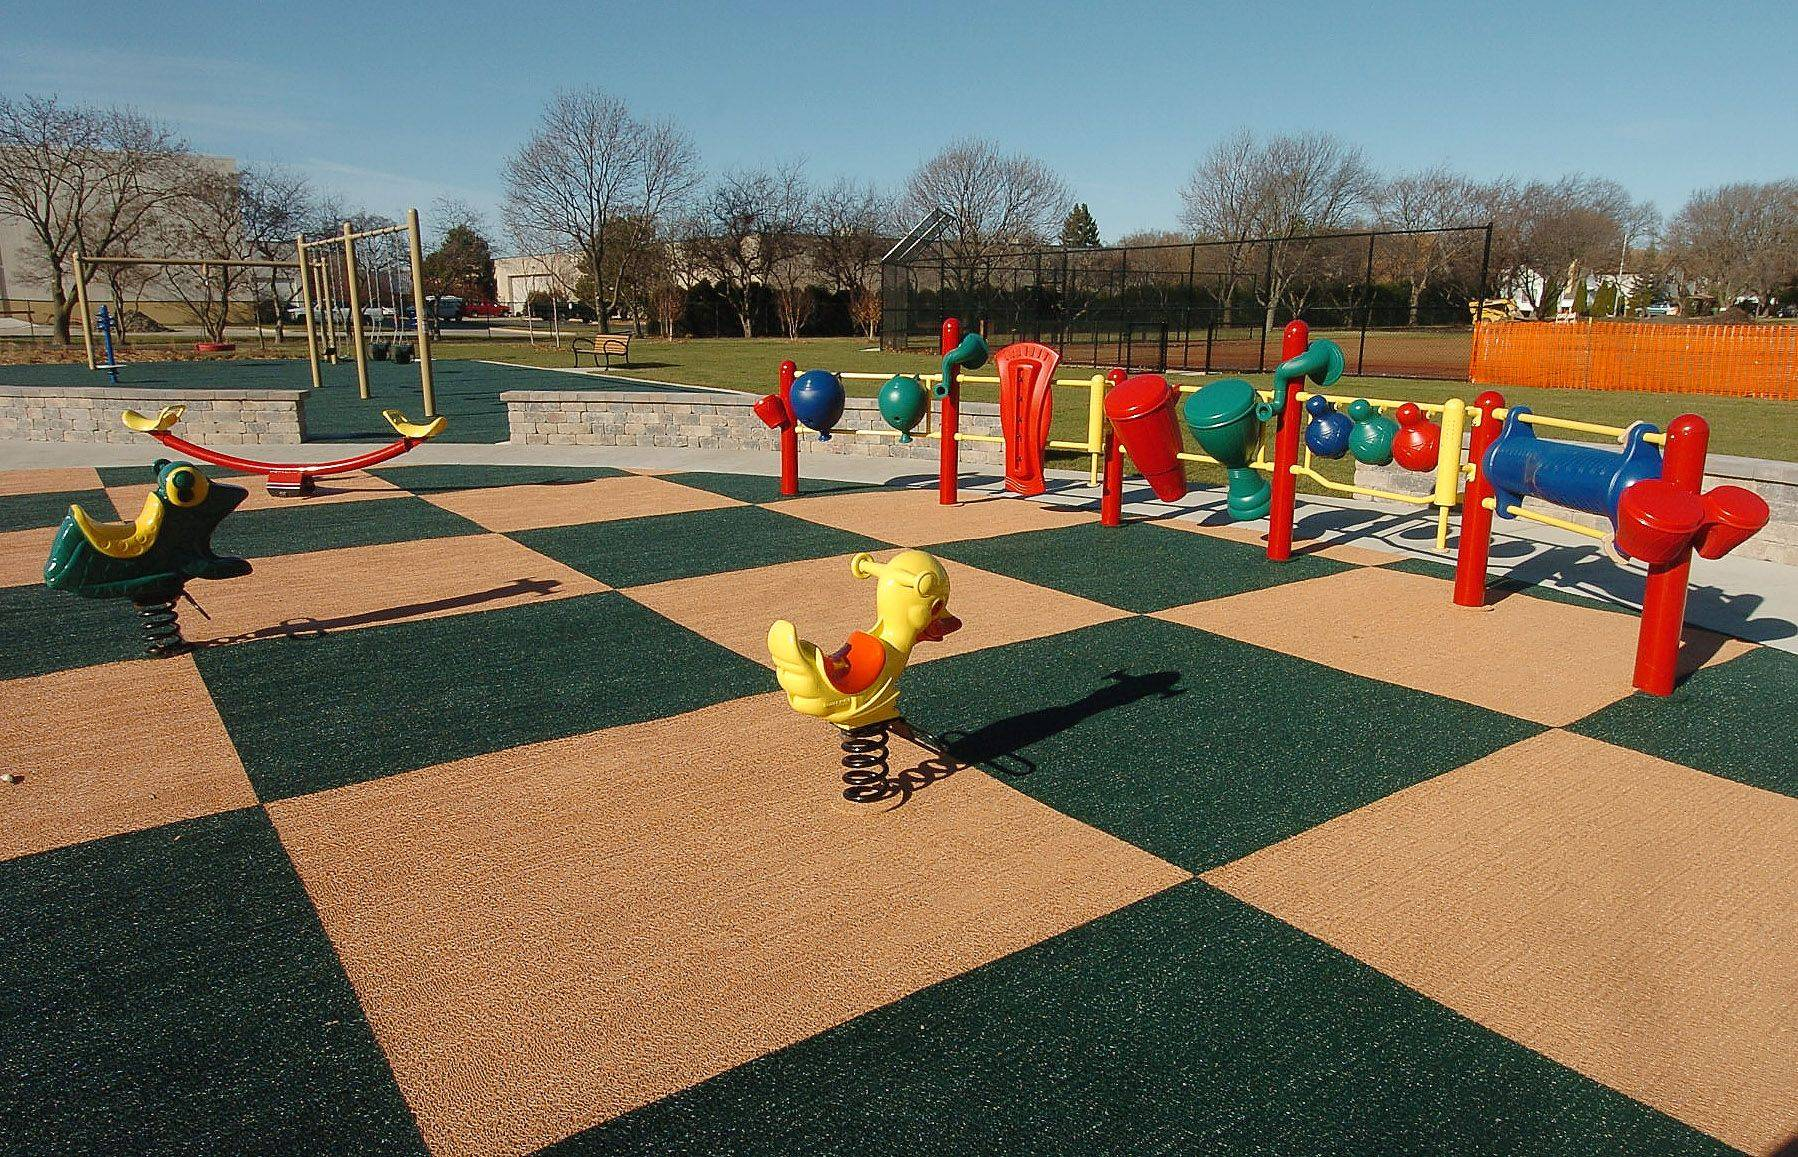 New playground equipment has been added to the updated Northside Park in Wheeling. The park reopened recently after completion of a $250,000 renovation project.